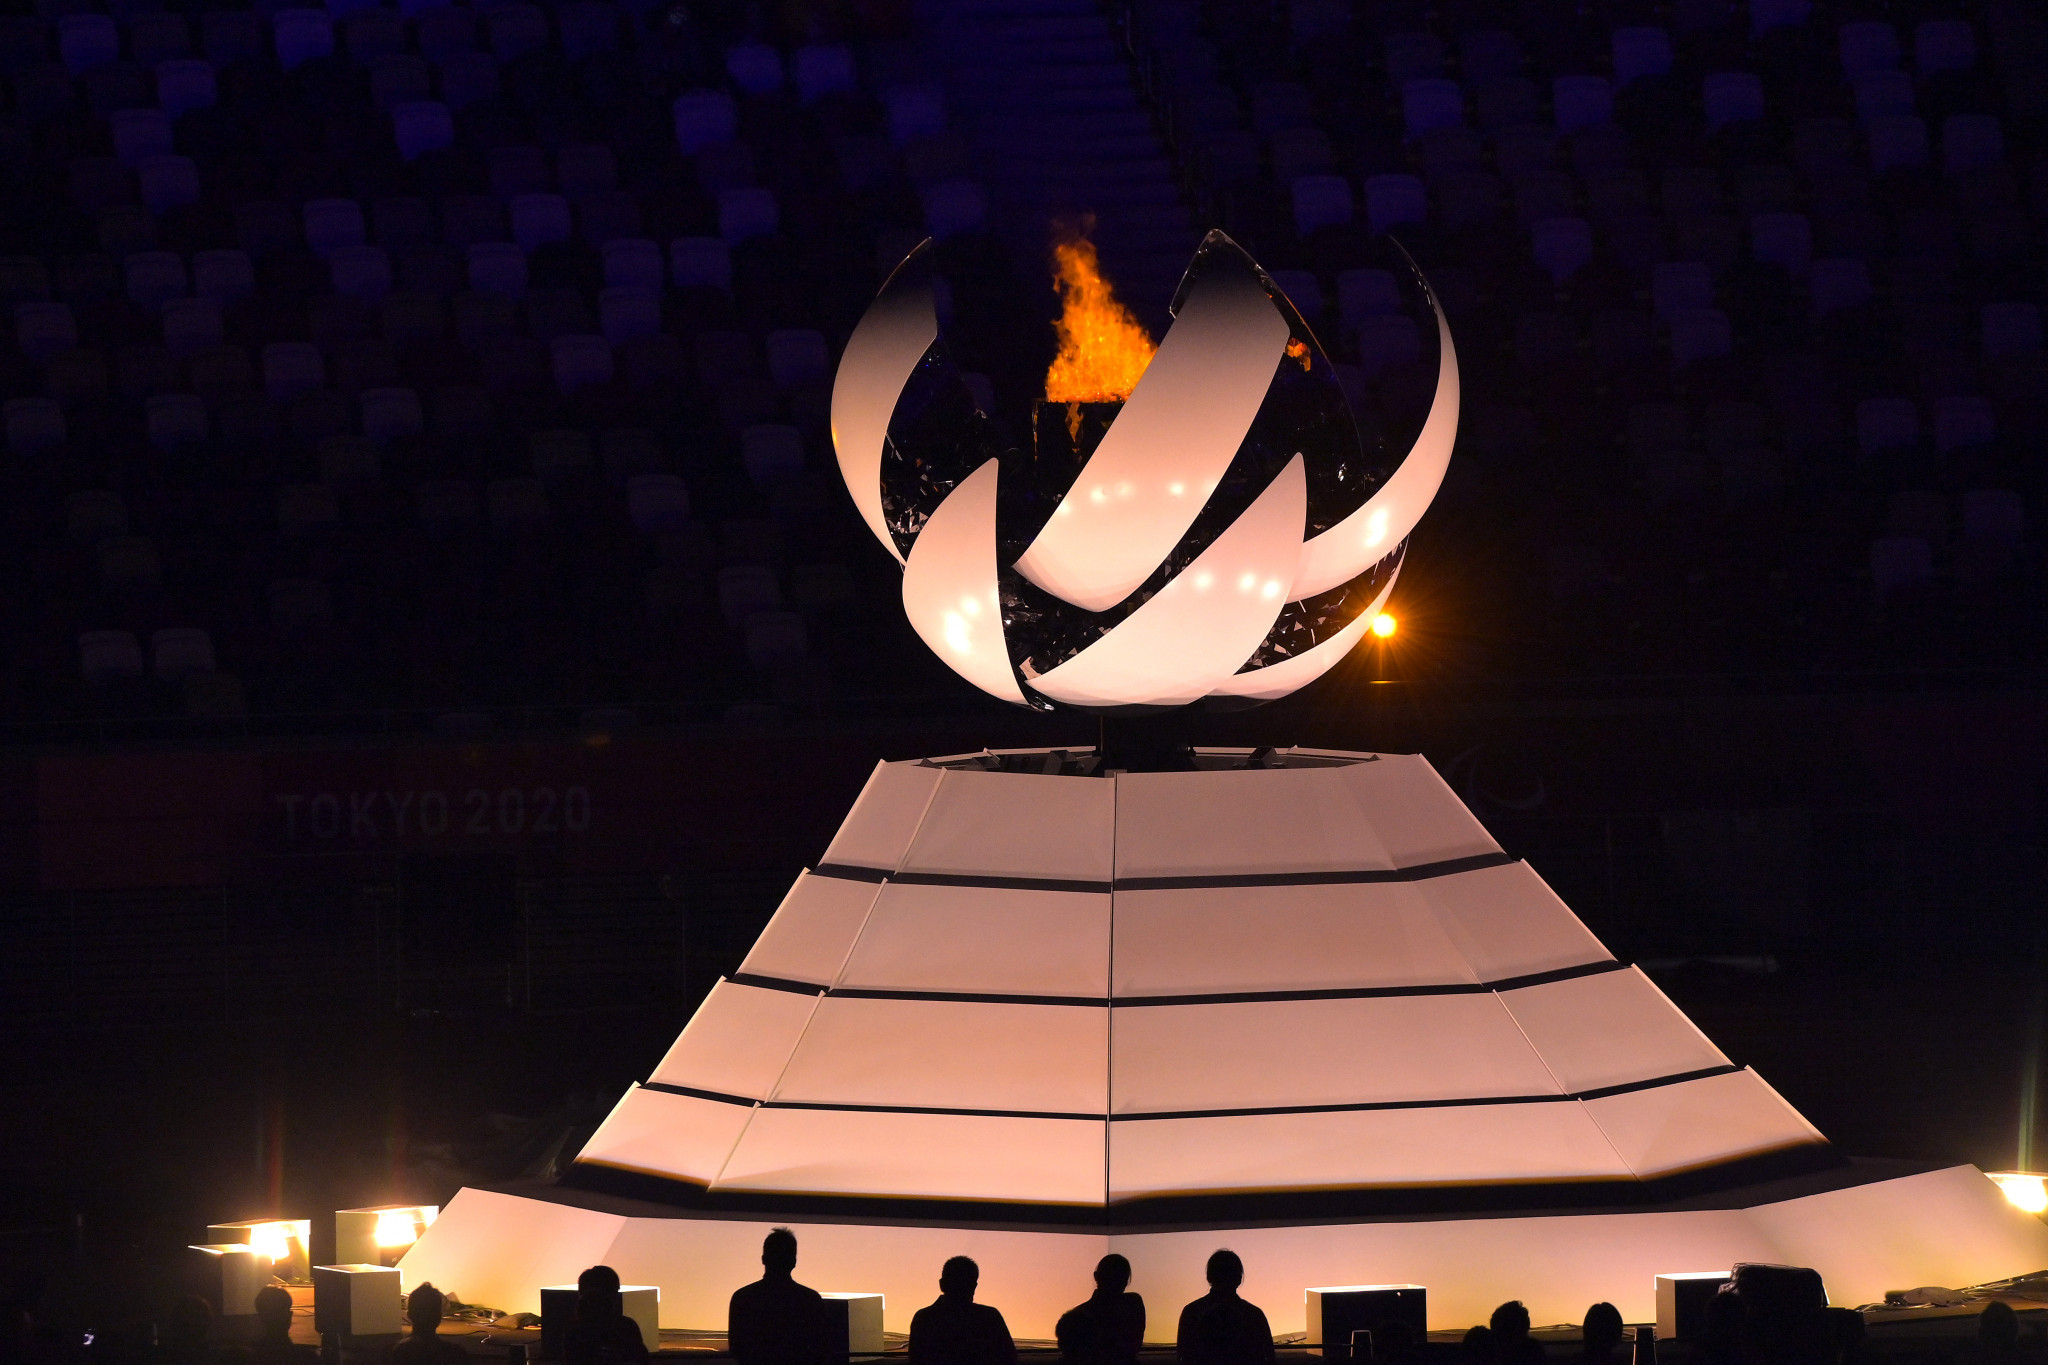 Tokyo 2020 Paralympic Games: Closing Ceremony